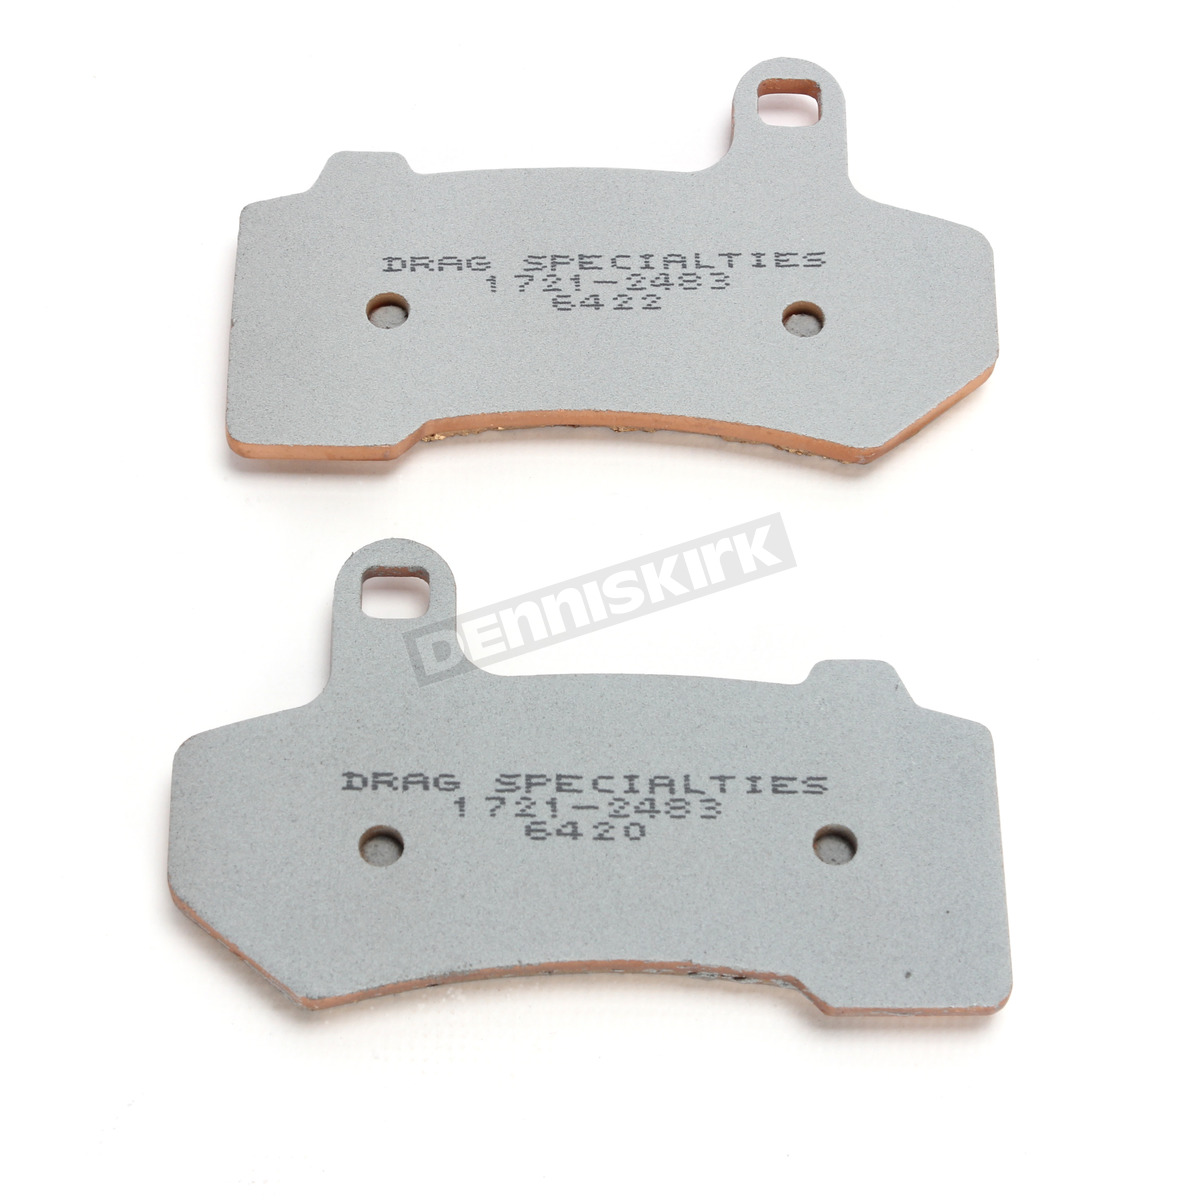 Rear Brake Pads Harley Touring /& V-Rod Drag Specialties Premium Sintered Front